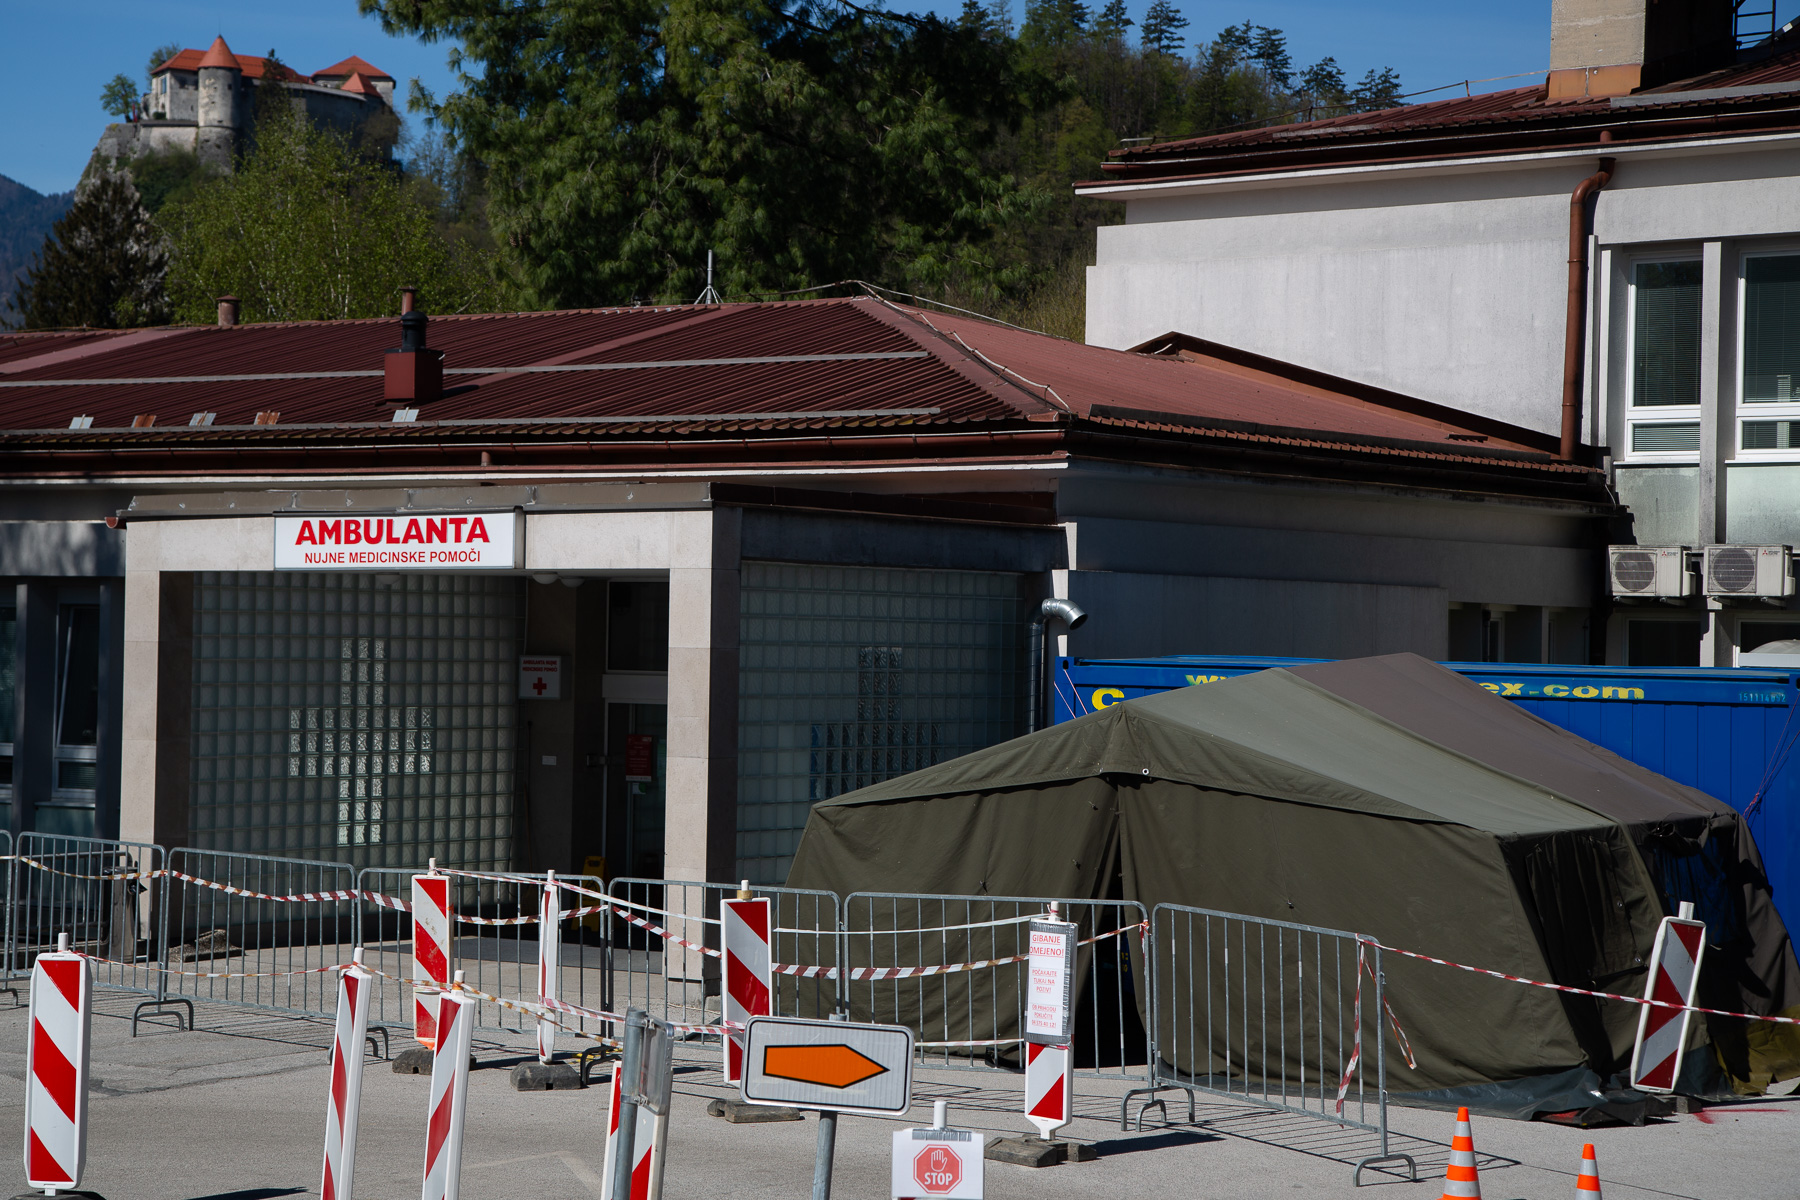 A COVID-19 testing site in front of a medical center in Bled, Slovenia, on April 16, 2020. The small town, known for its world famous tourist attraction, Lake Bled and the Bled Castle (seen in the background) is under strict lockdown and void of tourists after a month of nationwide quarantine.